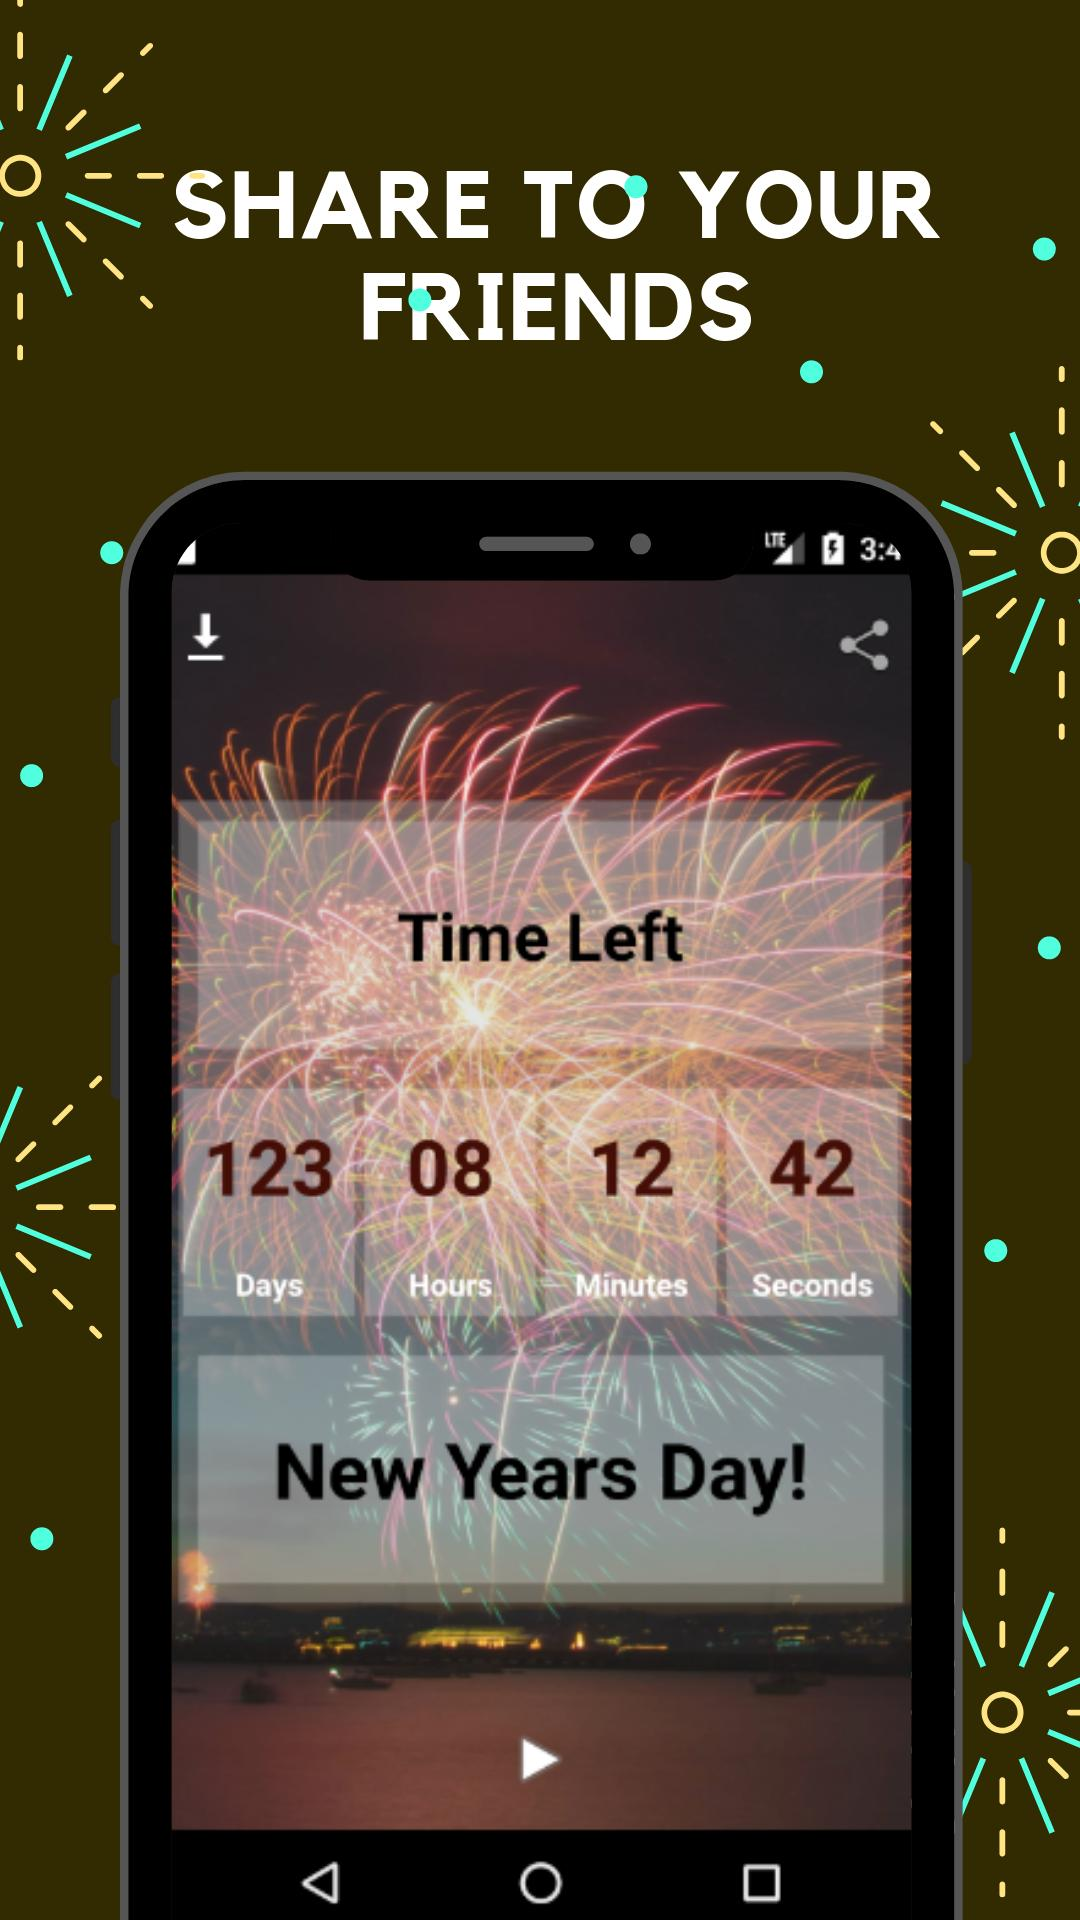 2020 New Year Countdown Wallpaper for Android   APK Download 1080x1920